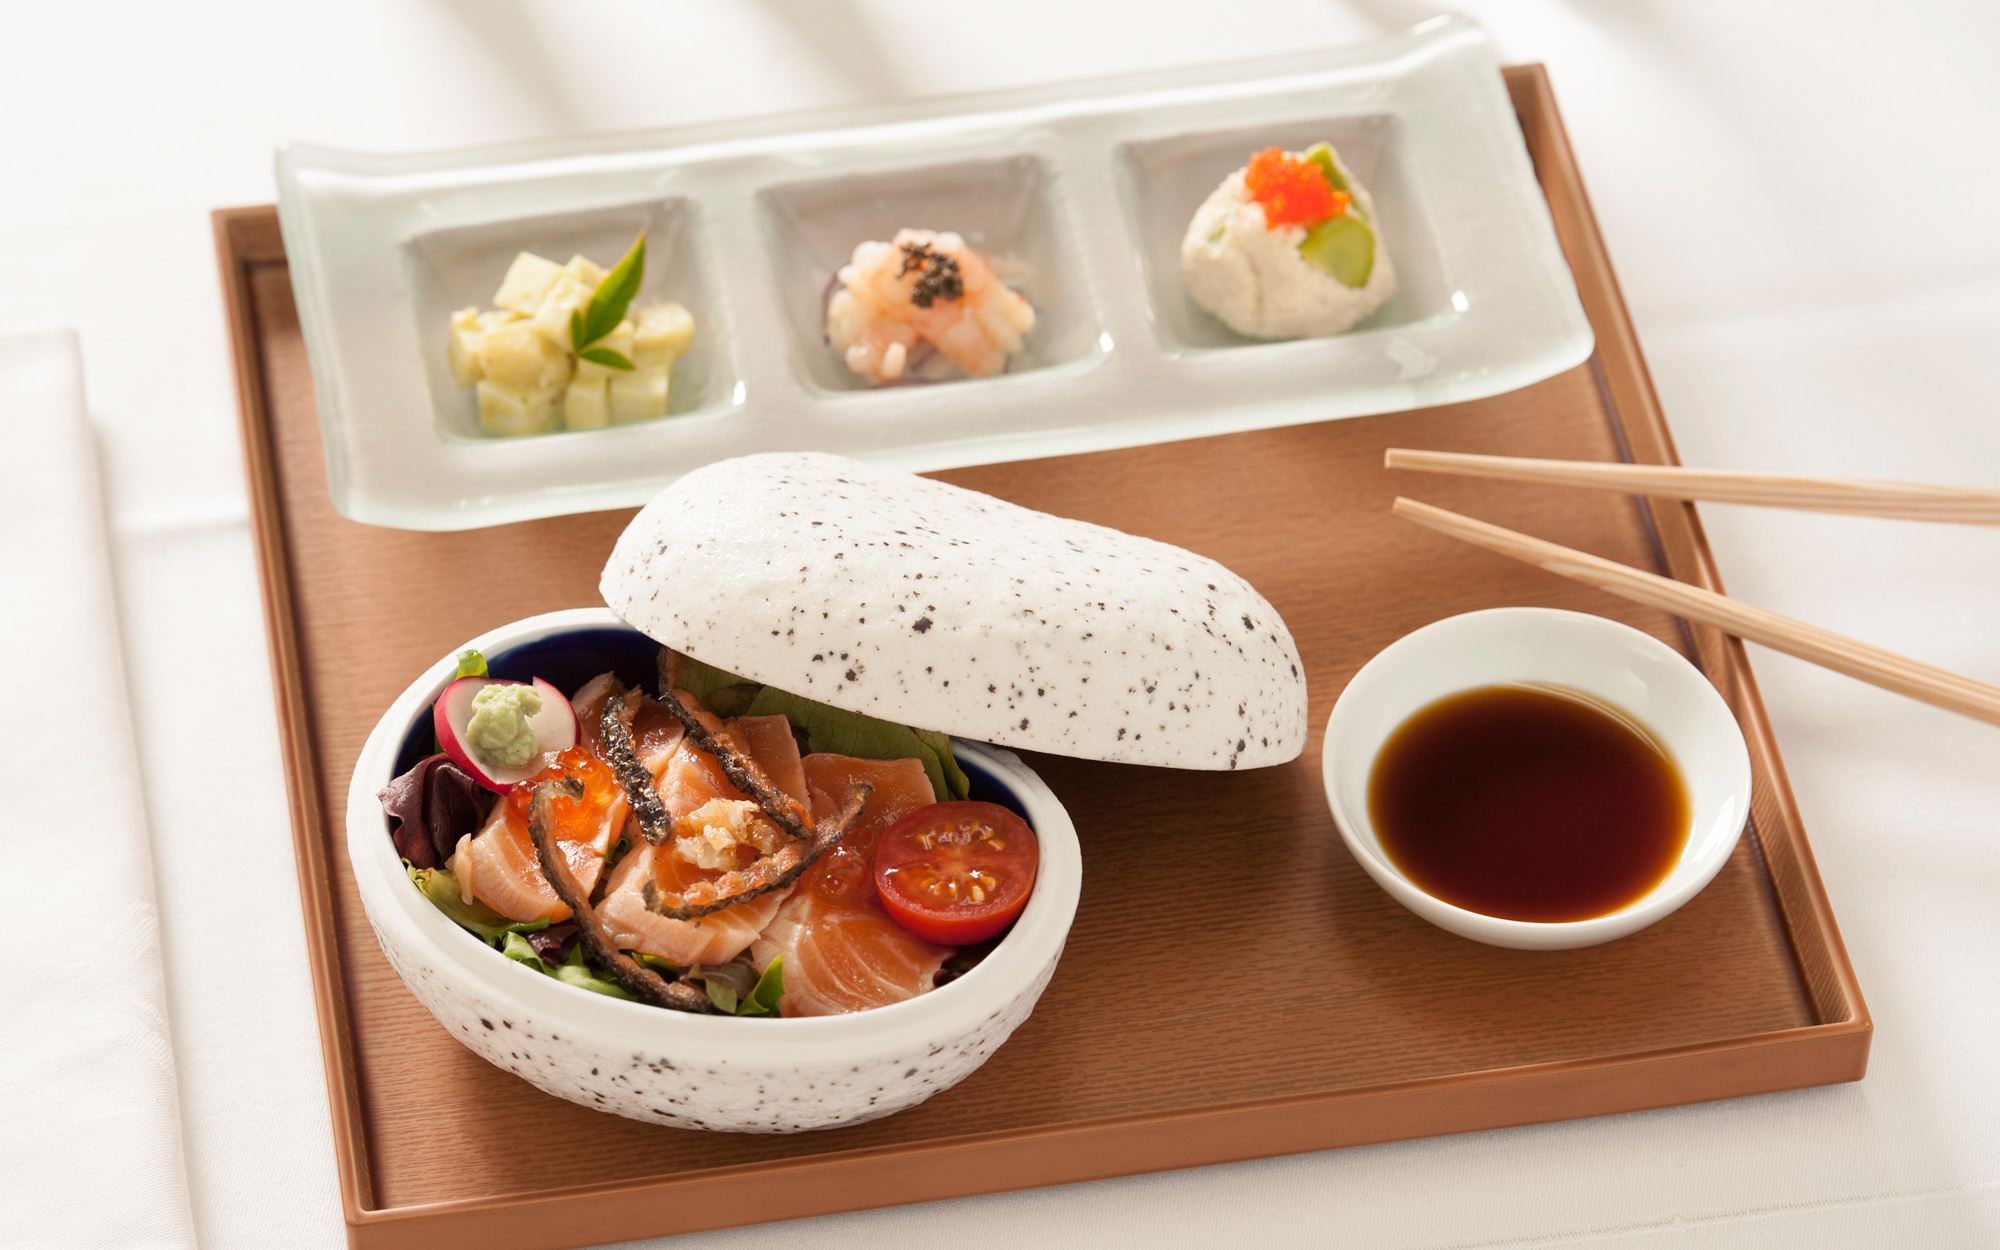 World's Best Airlines for Food: International: Singapore Airlines